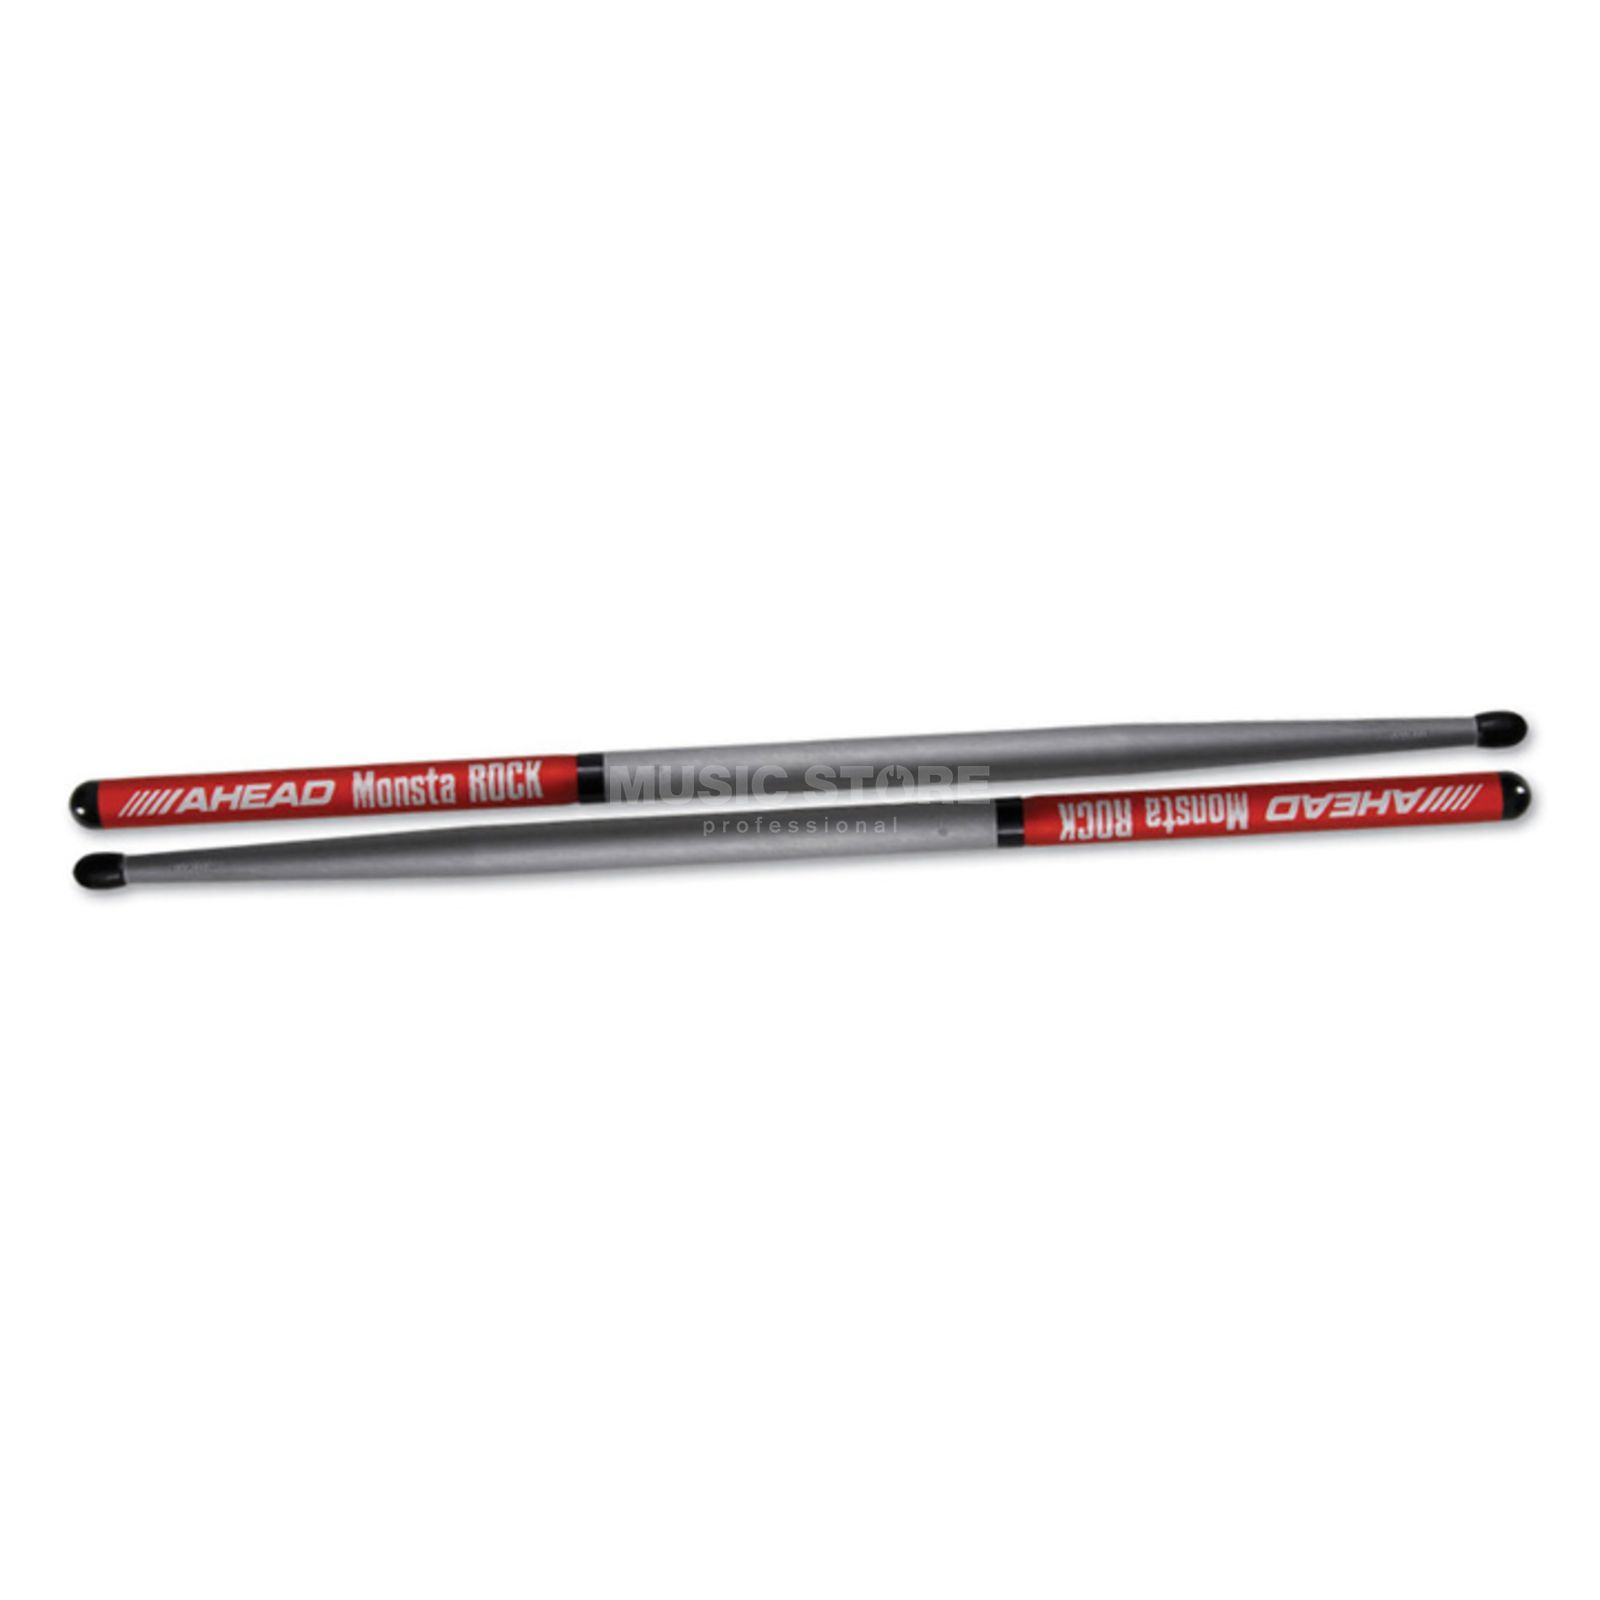 Ahead Sticks Monsta Rock Aluminium Sticks STS Produktbillede